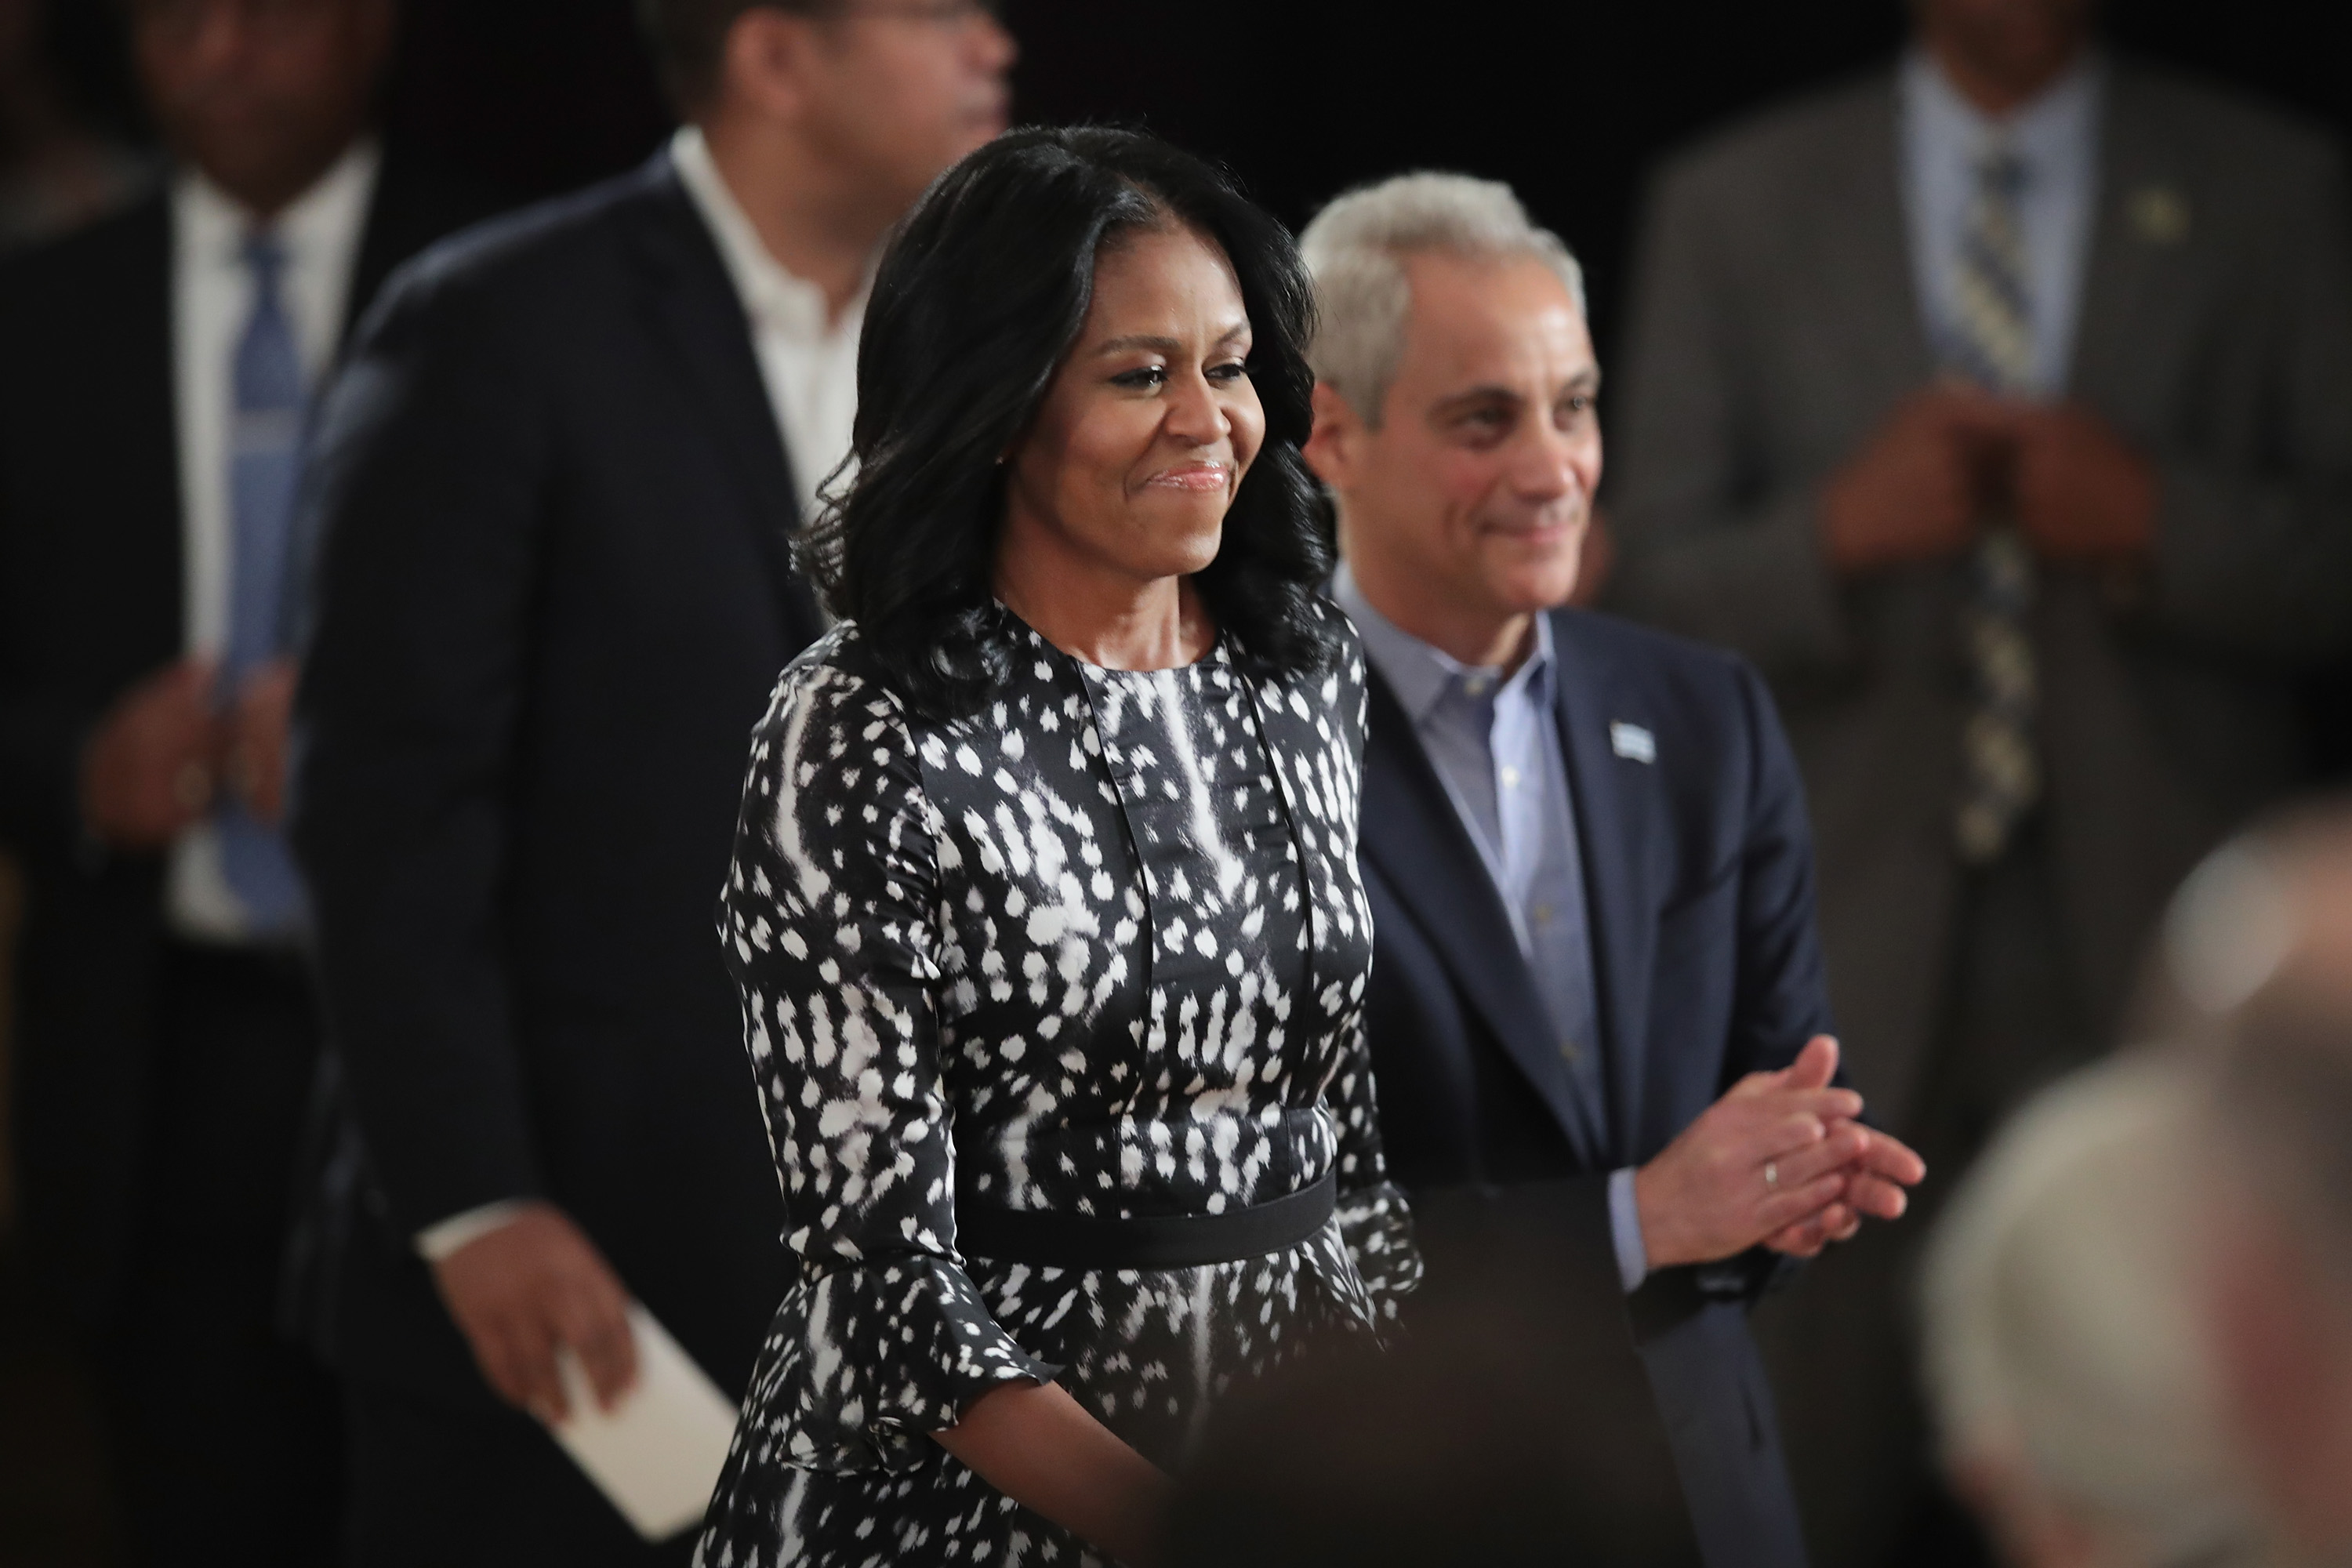 Former first lady Michelle Obama and Chicago Mayor Rahm Emanuel arrive for a roundtable discussion at the South Shore Cultural Center about the Obama Presidential Center, which is scheduled to be built in nearby Jackson Park, on May 3, 2017 in Chicago, Illinois. The Presidential Center design envisions three buildings, a museum, library and forum.